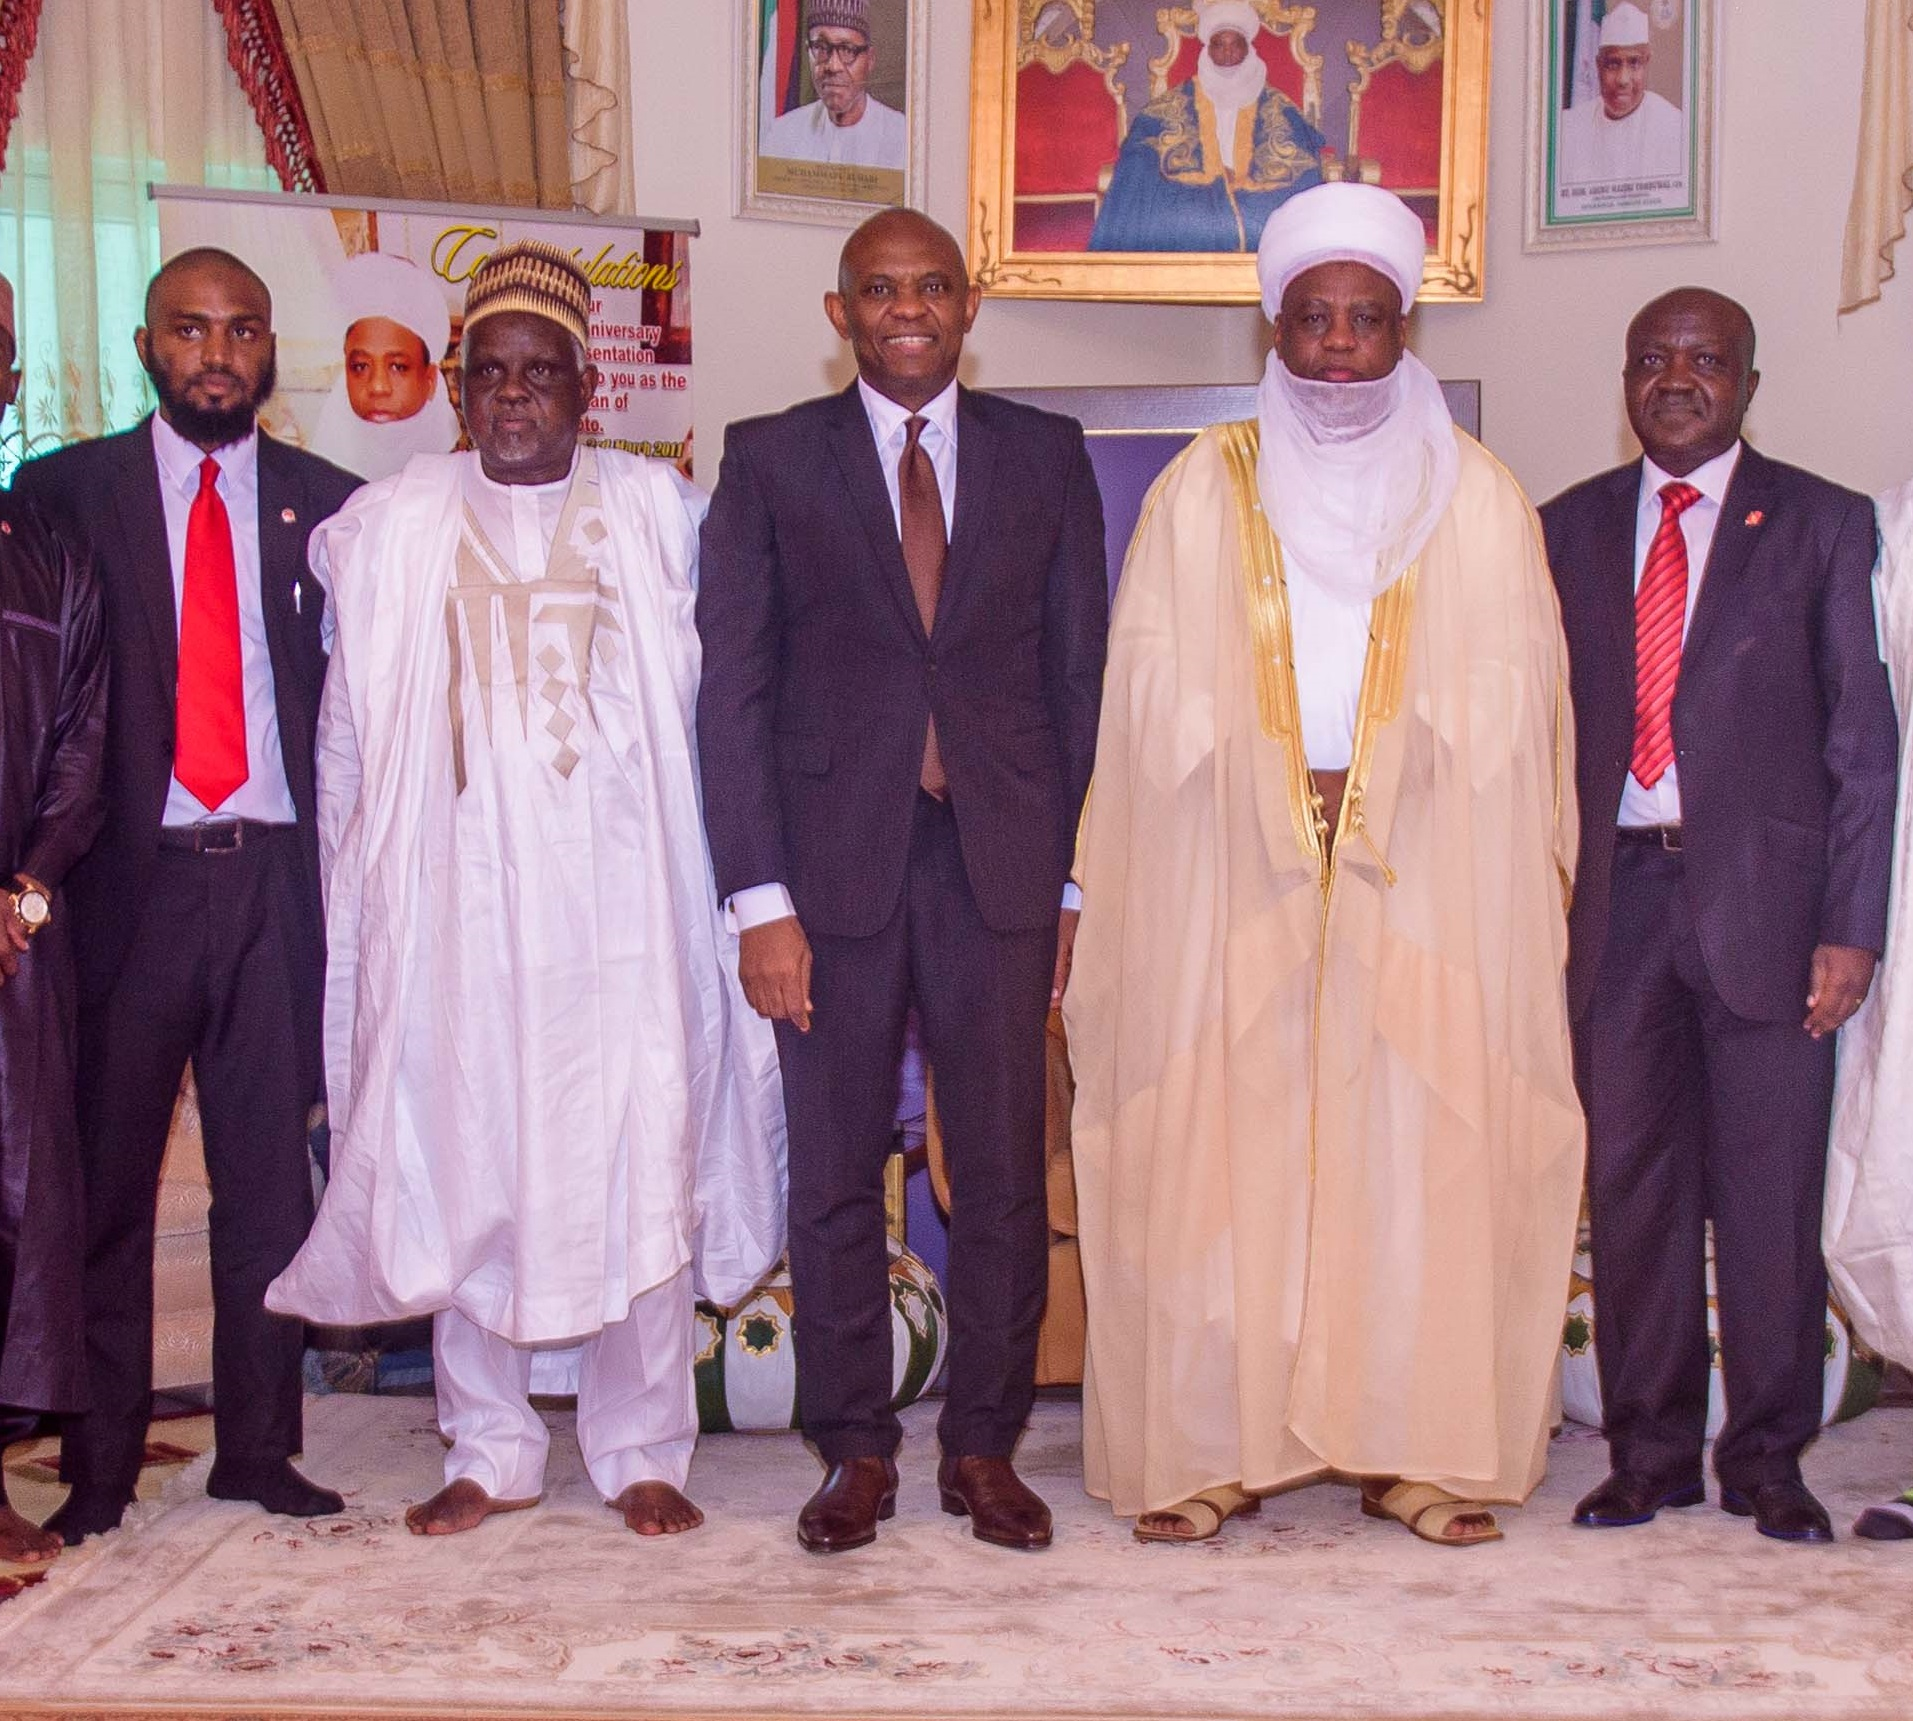 "l-r: Usmanu Danfodiyo University, Sokoto (UDUS) Alumni & Tony Elumelu Entrepreneur, Dr, Shadi Sabeh ;Vice Chancellor, Usmanu Danfodiyo University, Sokoto (UDUS), Professor Abdullahi Abdu Zuru; Chairman, UBA Plc and Founder, Tony Elumelu Foundation, Tony O. Elumelu; The Sultan of Sokoto, Sa'ad Abubakar III; and Executive Director, North, UBA Plc. Ibrahim Puri, when Tony Elumelu paid a courtesy visit to the Governor ahead of the National Dialogue Series where Elumelu  spoke on ""Entrepreneurship: An Antidote to Nigerian Youth Unemployment"", at the Usmanu Danfodiyo University in Sokoto on Saturday"